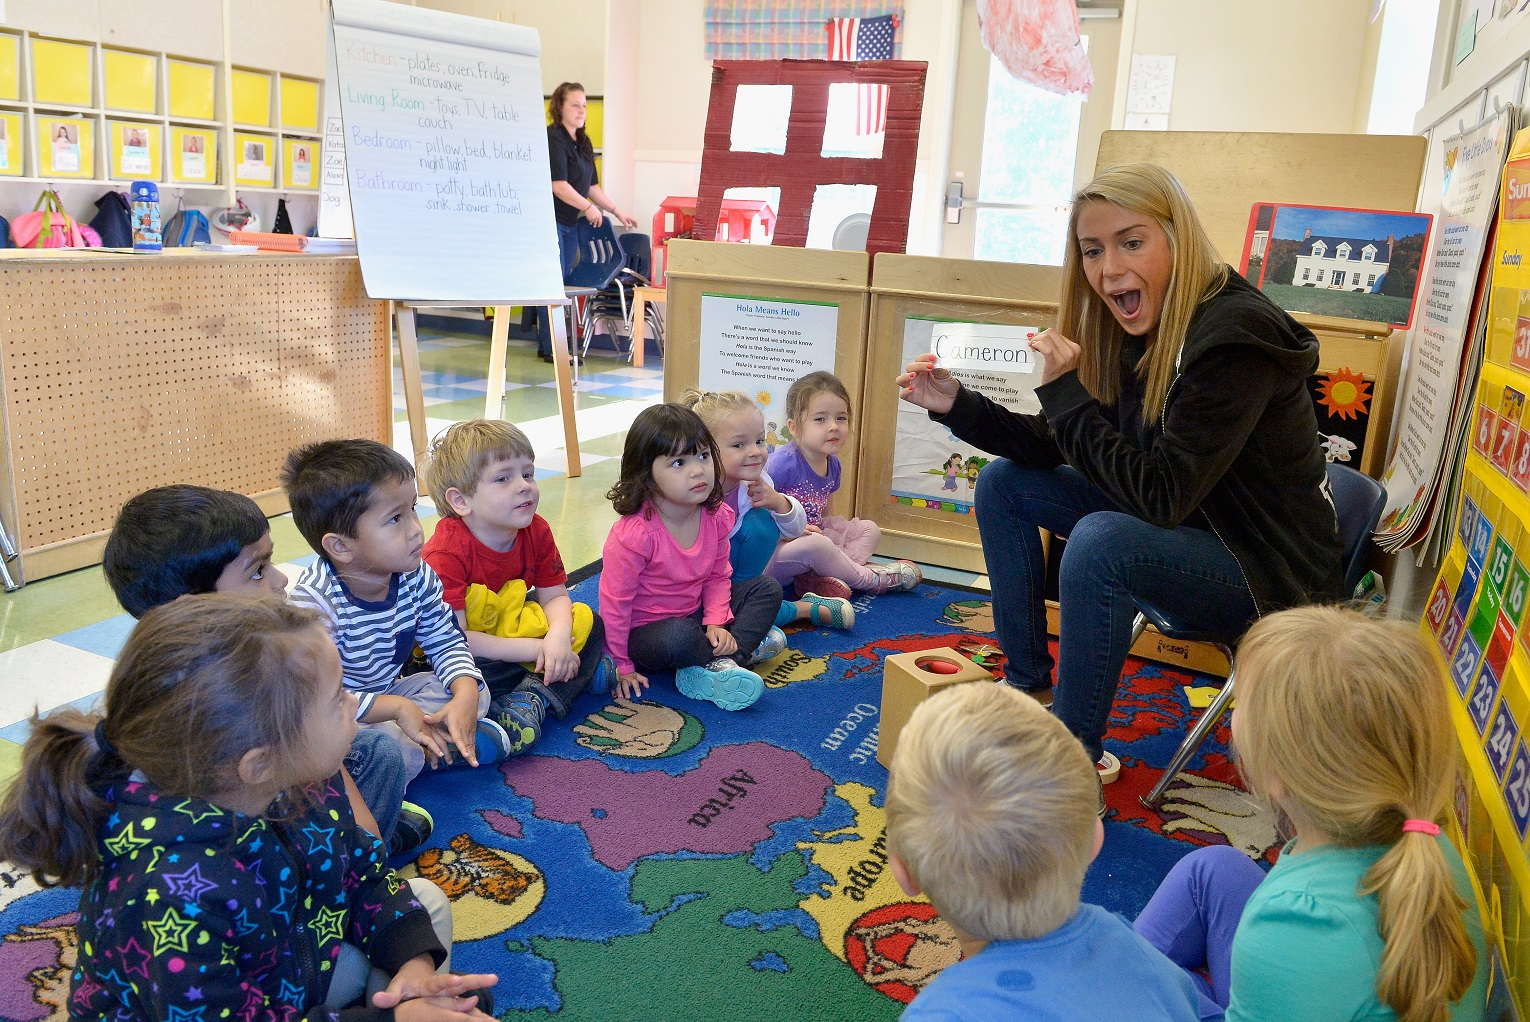 How to Match Pre-schoolers Activities to Their Learning Styles